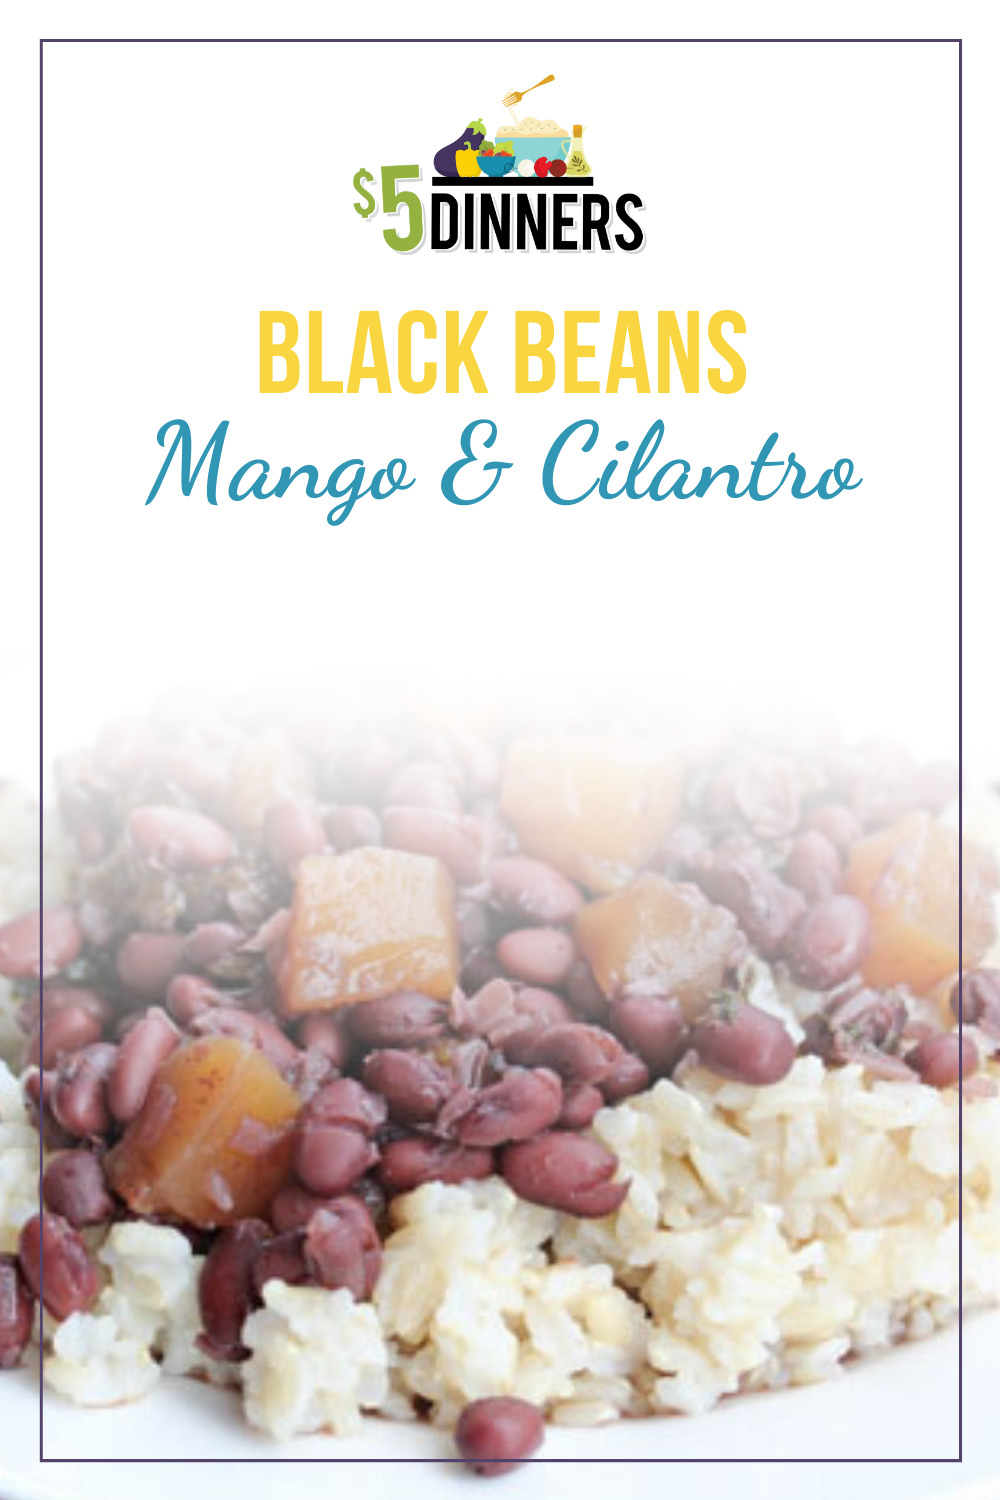 black beans with mango & cilantro